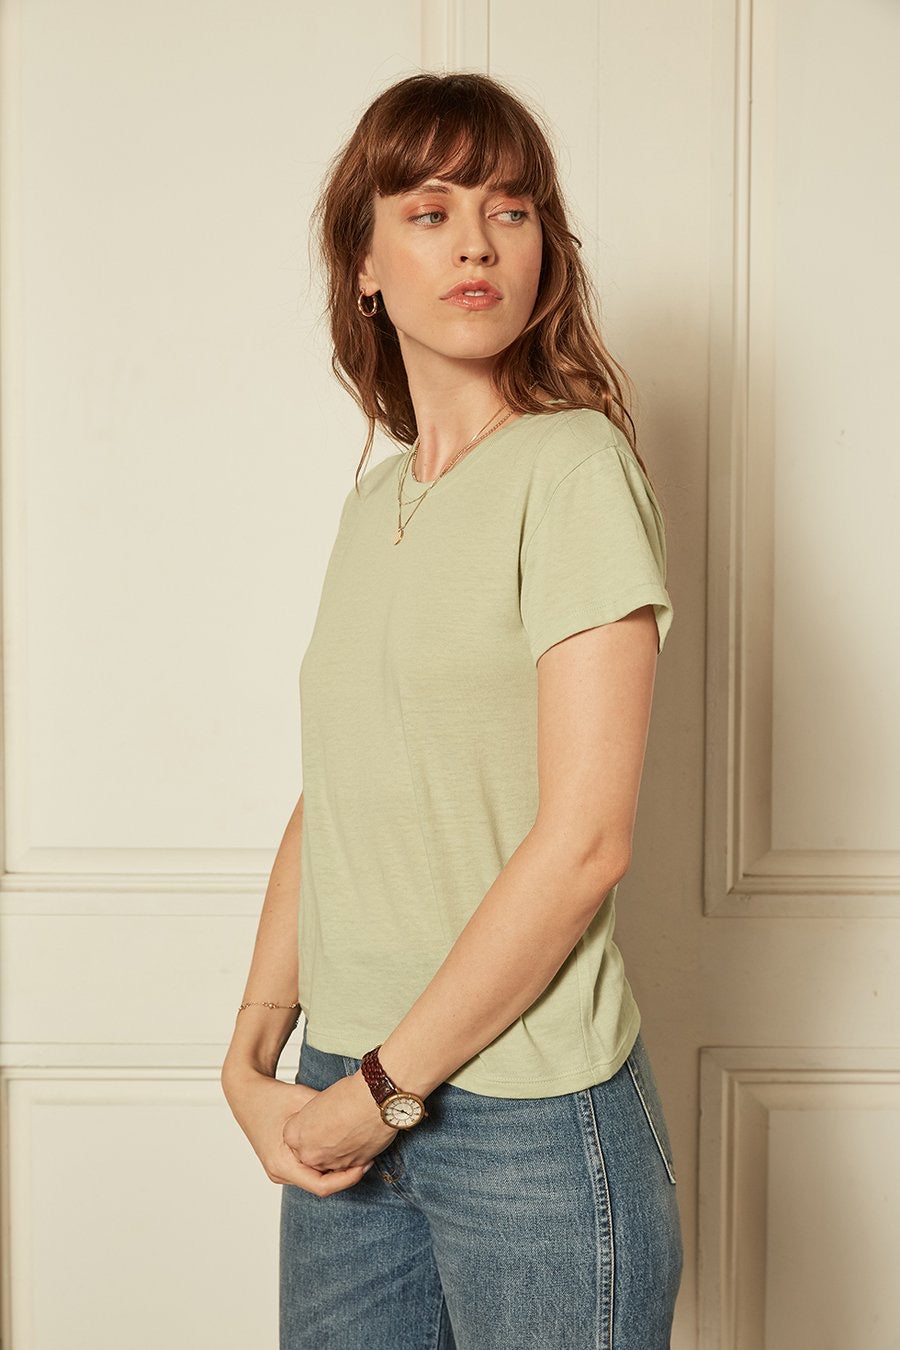 The Jagger Organic Cotton Crew Neck Tee by Boyish Jeans